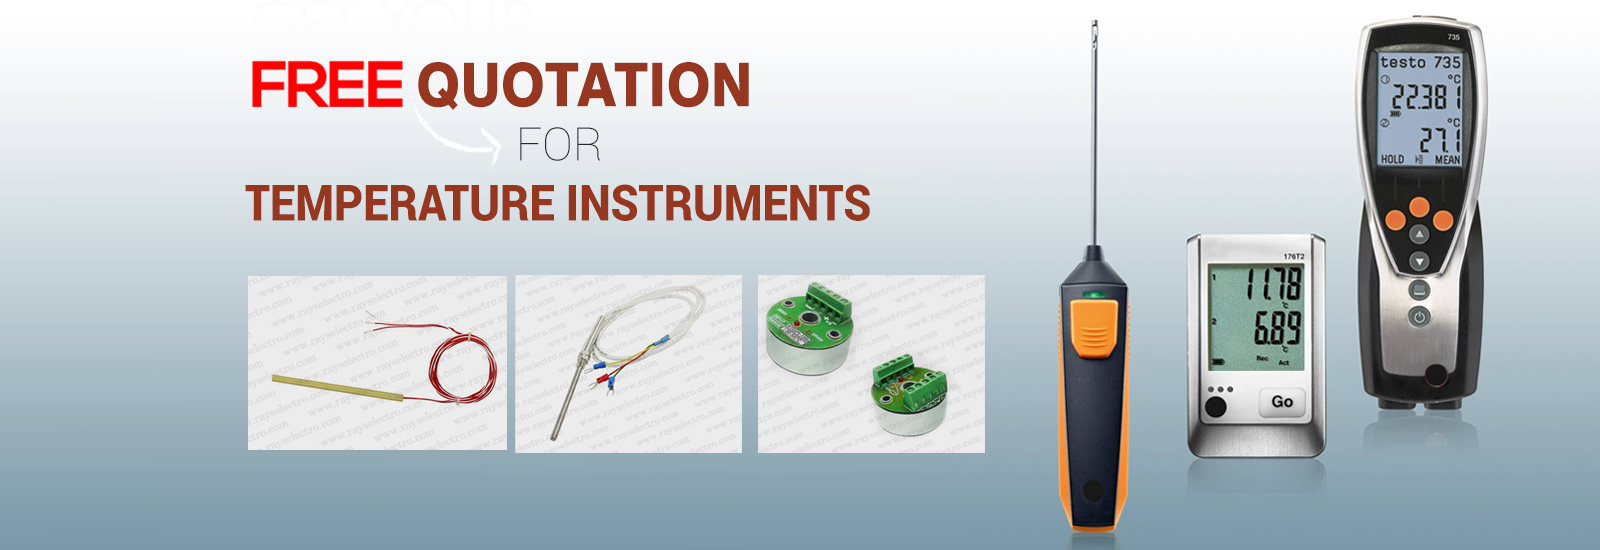 temperatureinstruments machine